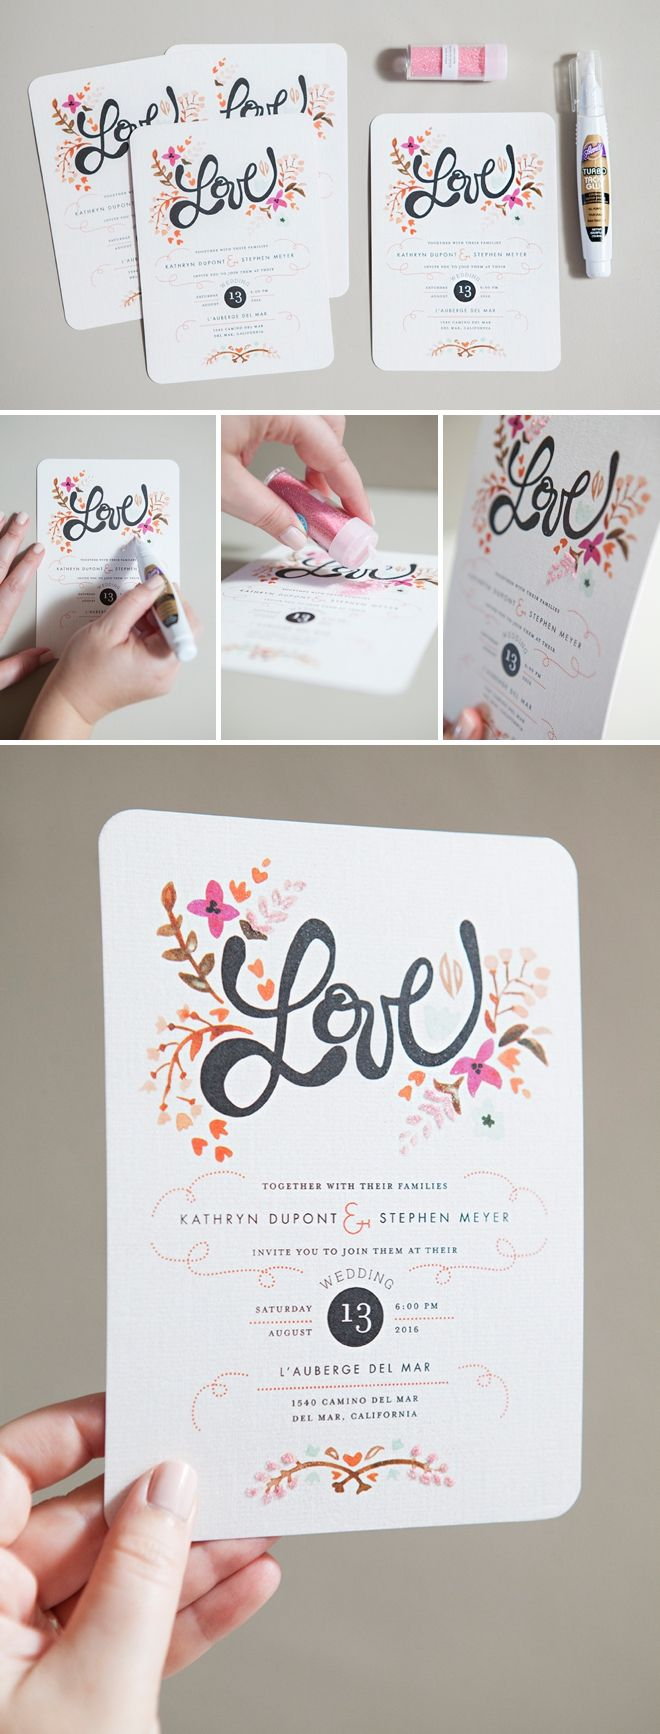 Learn how to embellish store bought wedding invitations diy